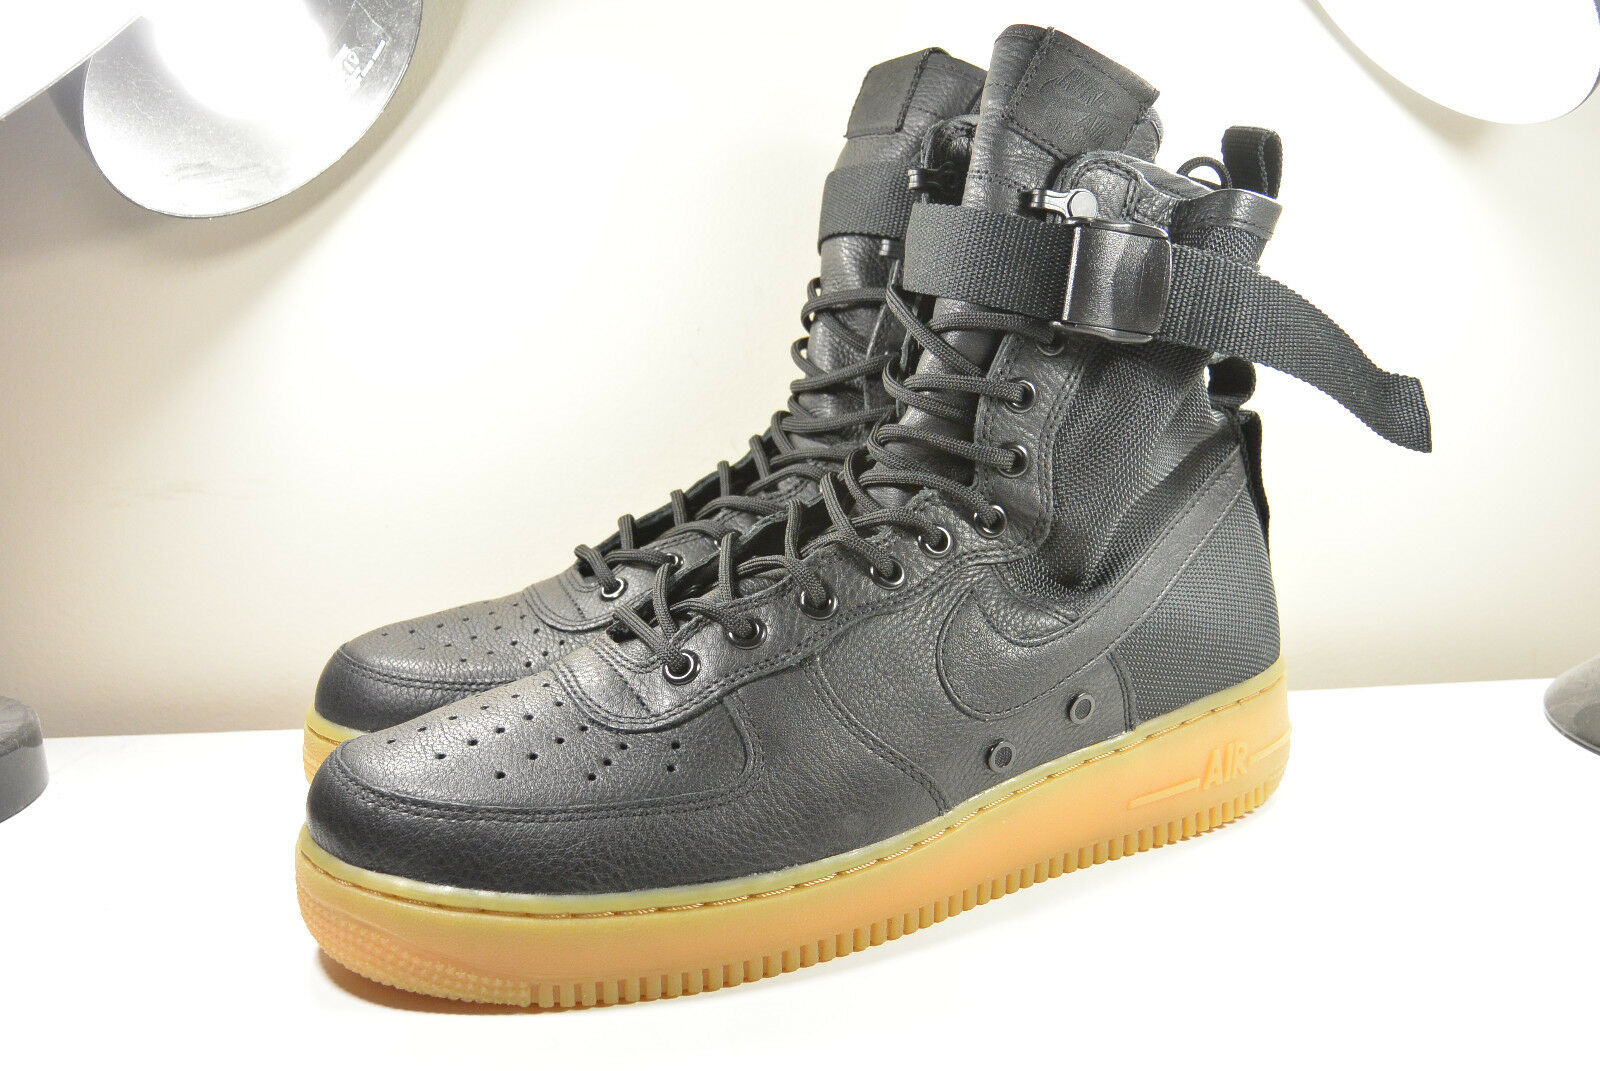 DS Force Nike 2016 SF AF1 Air Force DS 1 especial Feild Negro Goma 11.5 Supremo Foamposite 930f9a